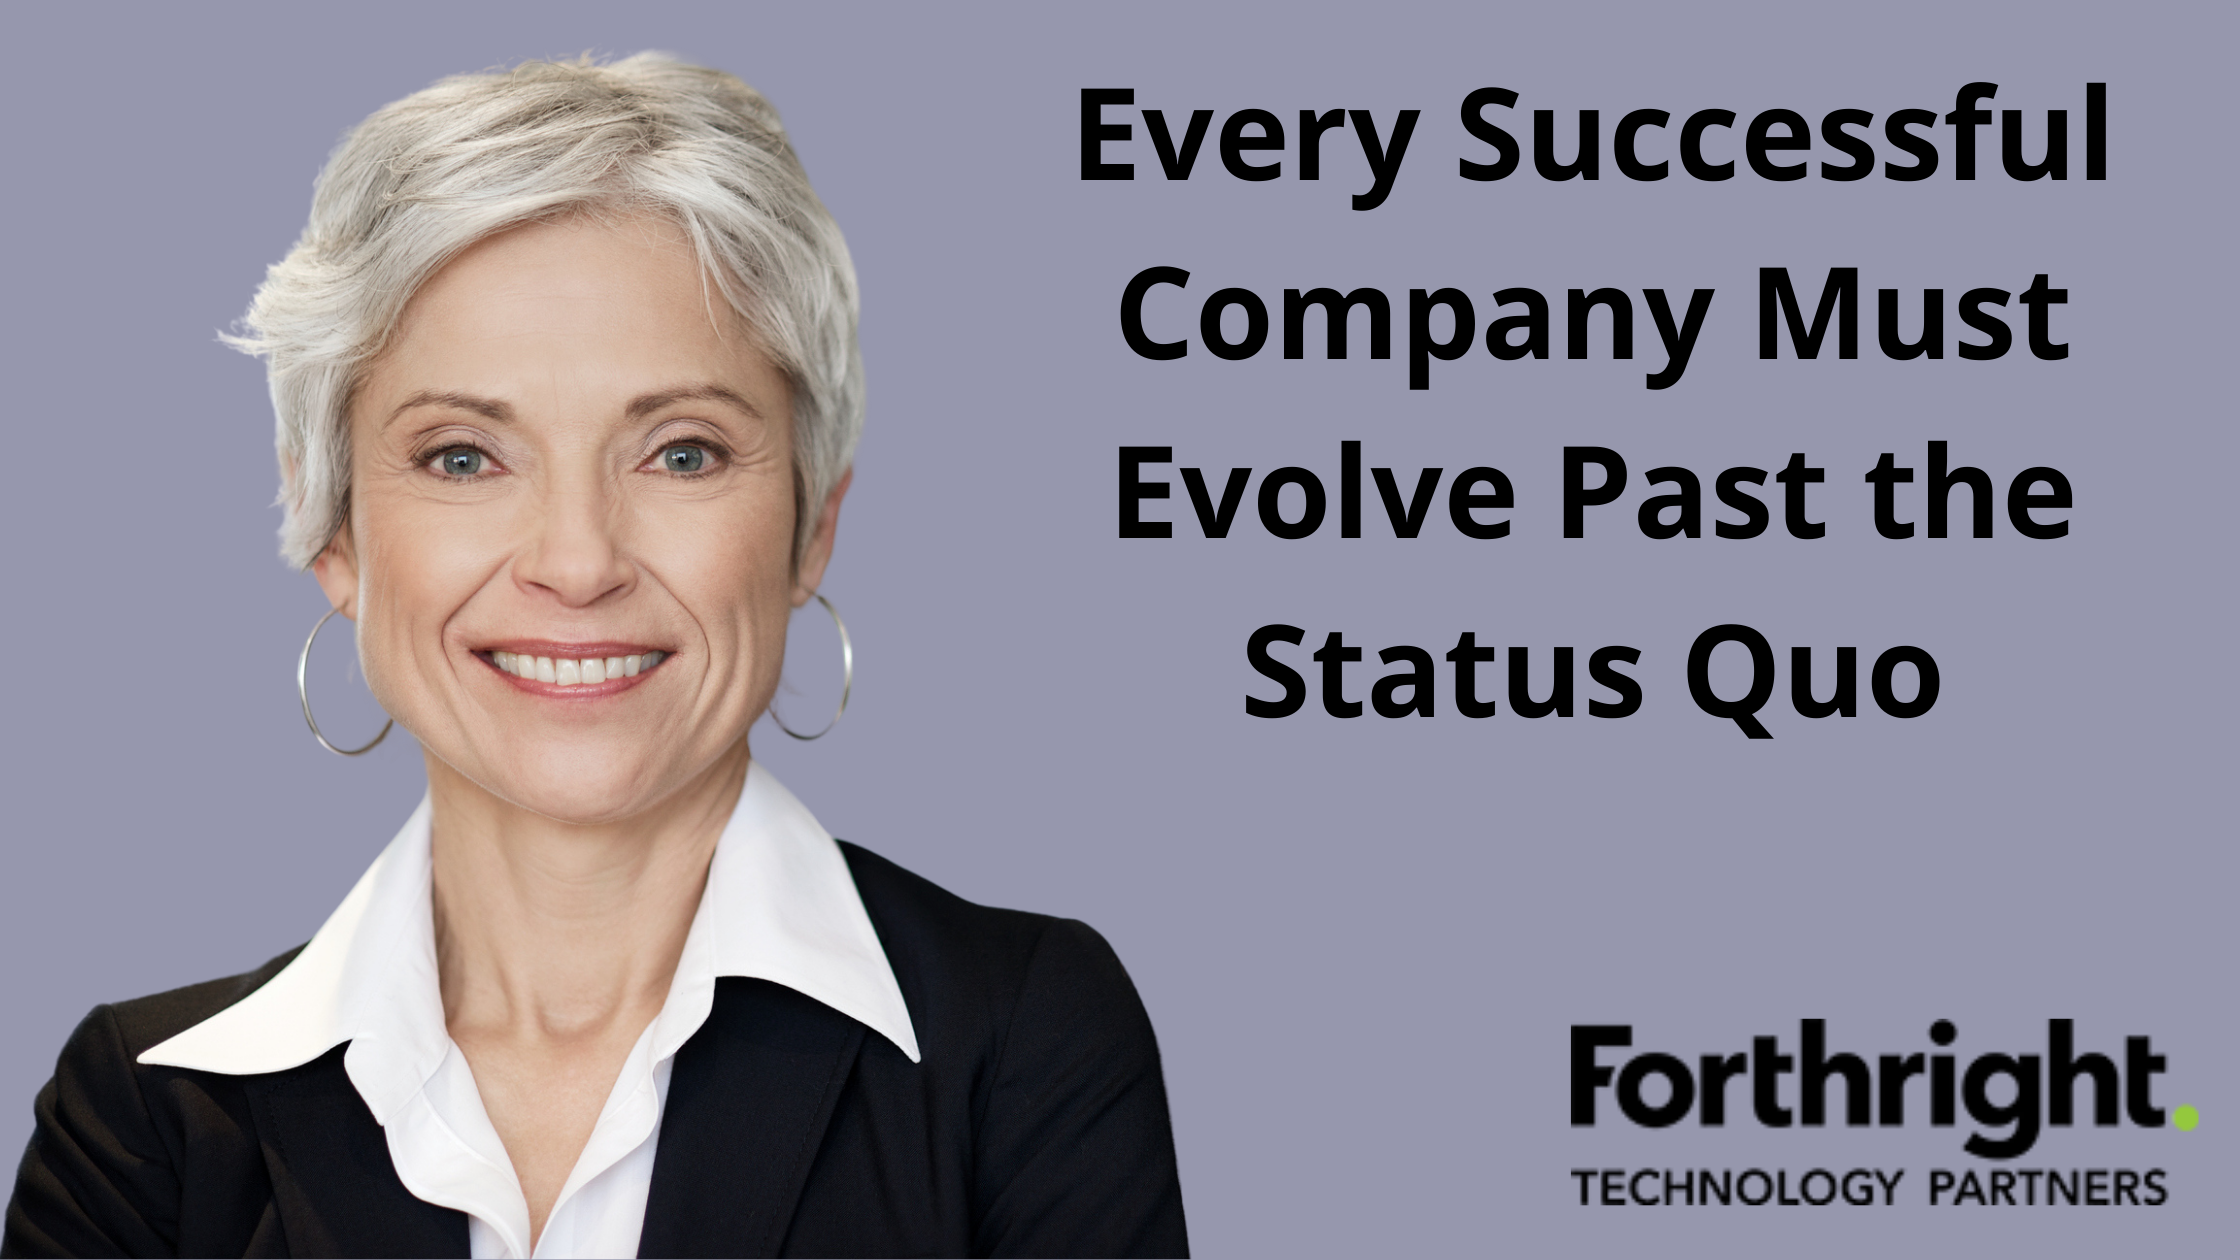 Every Successful Company Must Evolve Past the Status Quo